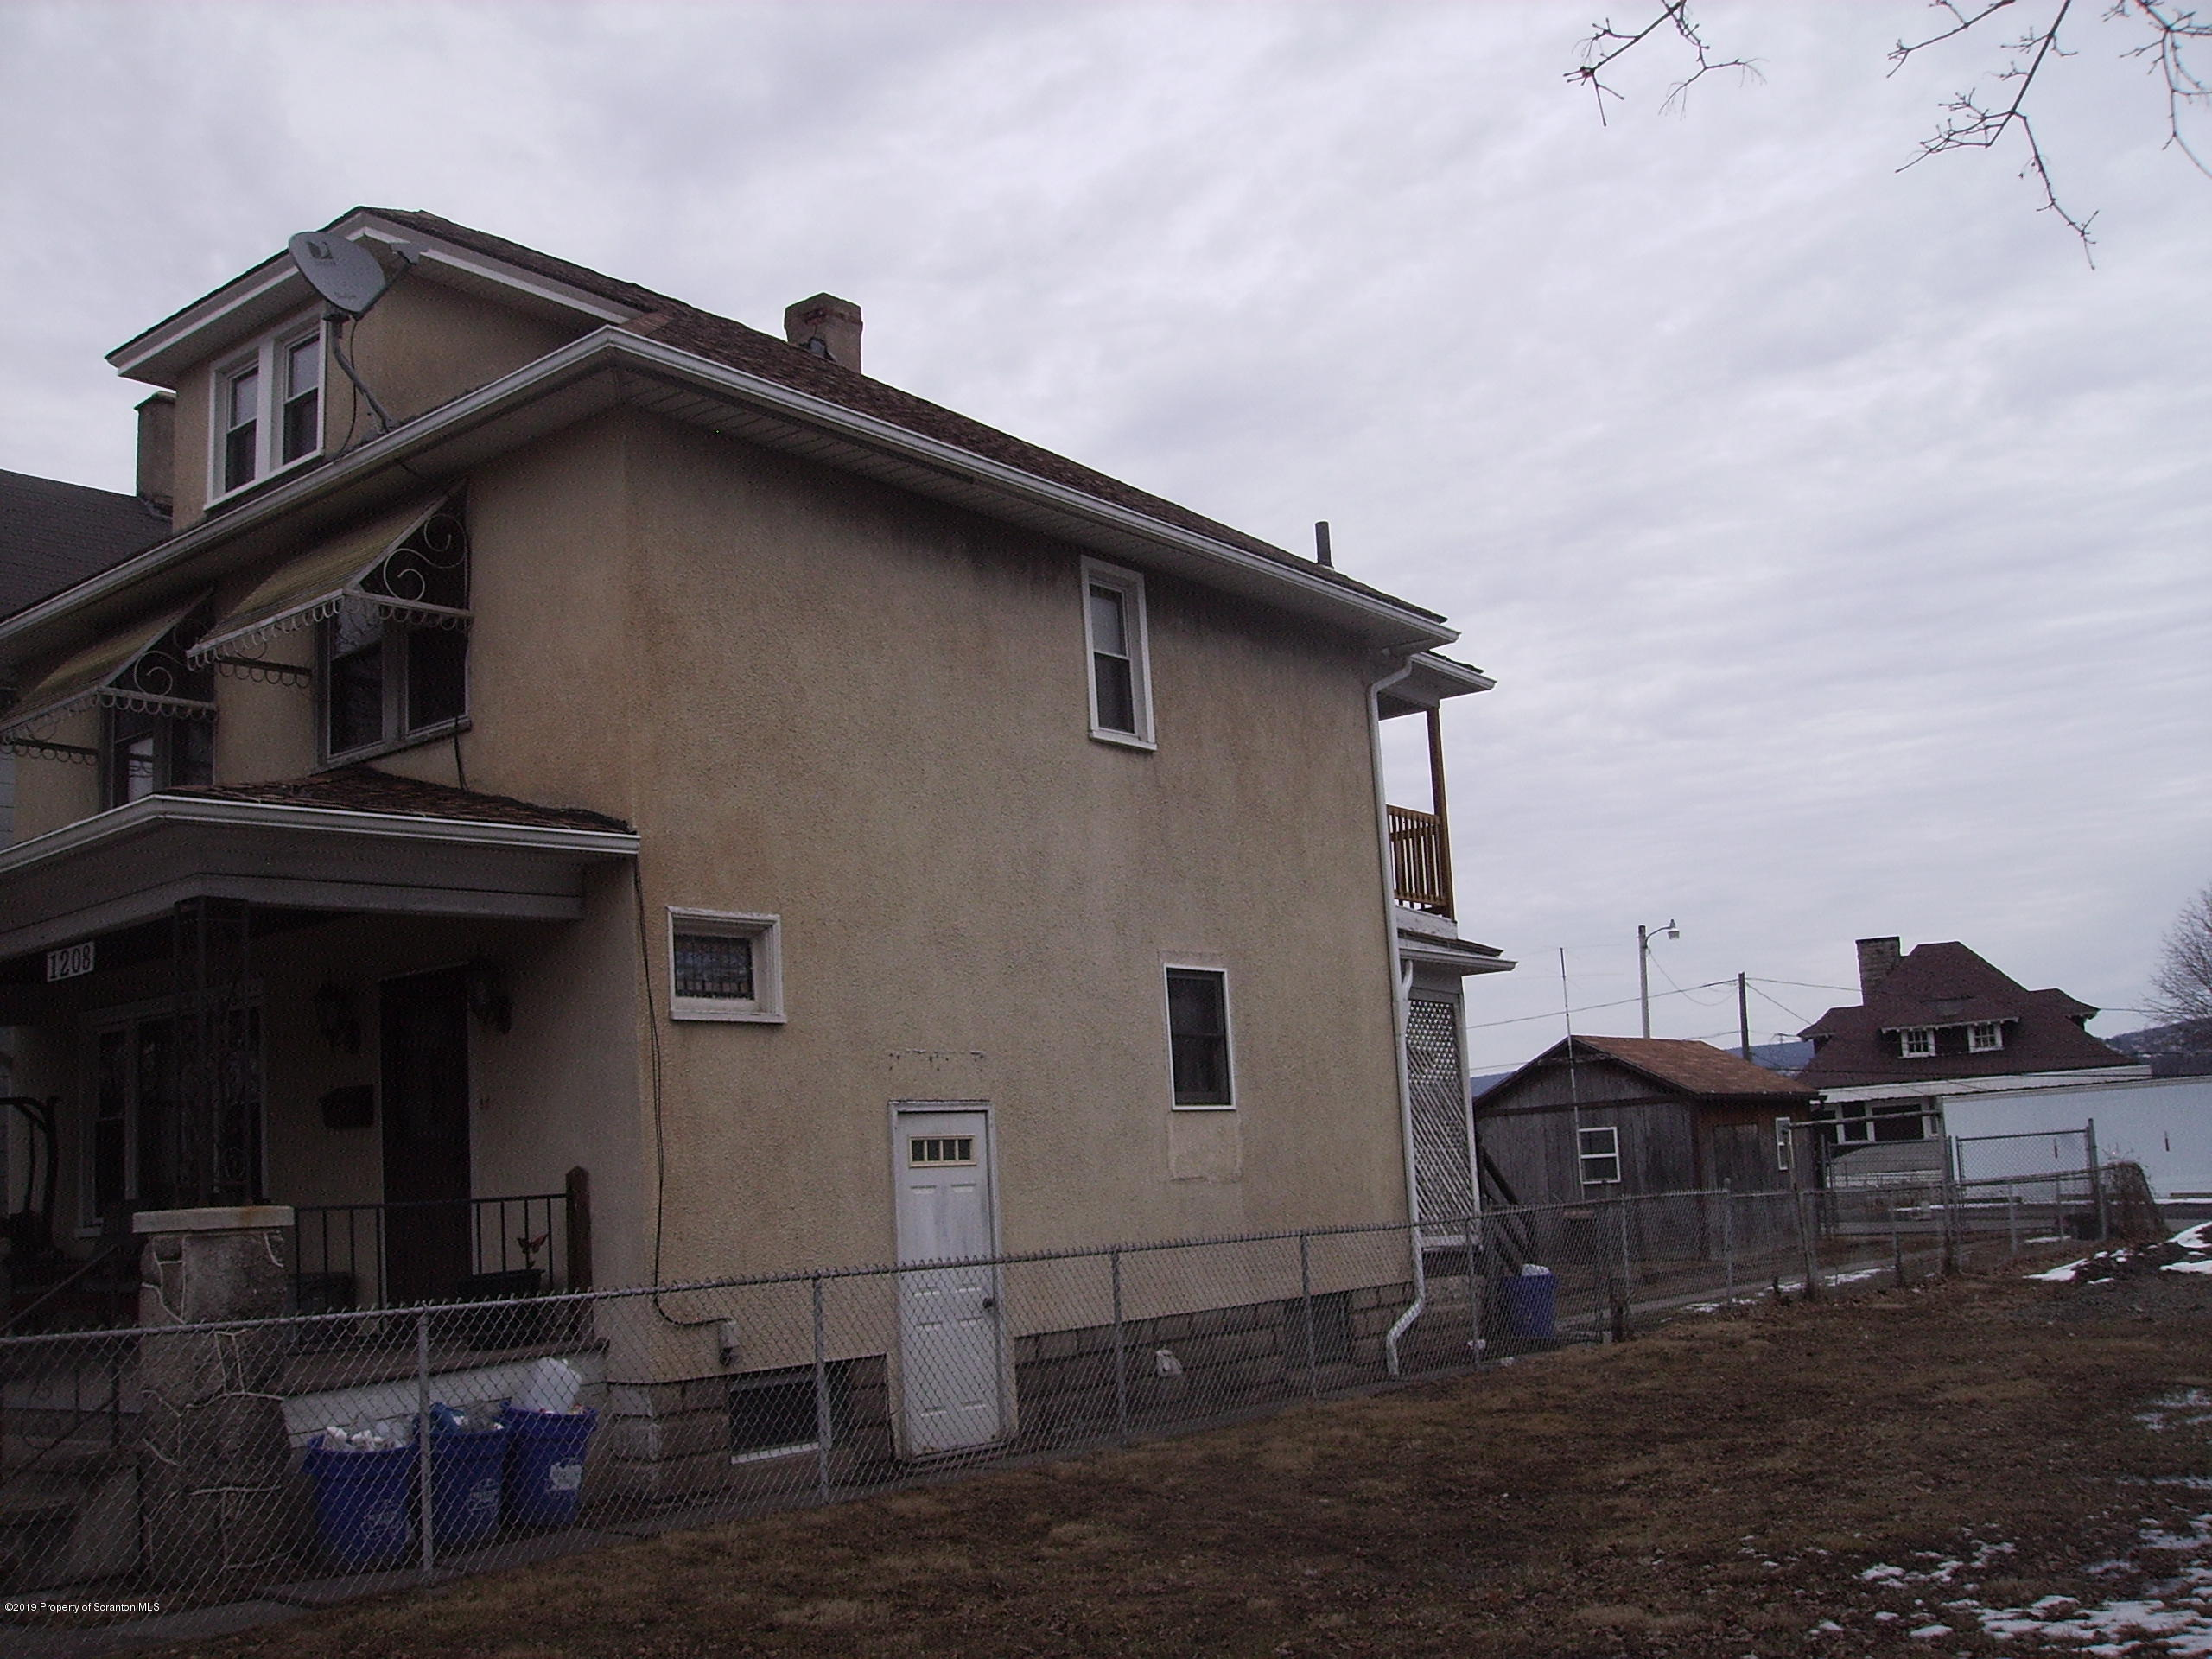 1208 Main Ave, Scranton, Pennsylvania 18508, 3 Bedrooms Bedrooms, 6 Rooms Rooms,1 BathroomBathrooms,Single Family,For Sale,Main,20-4532